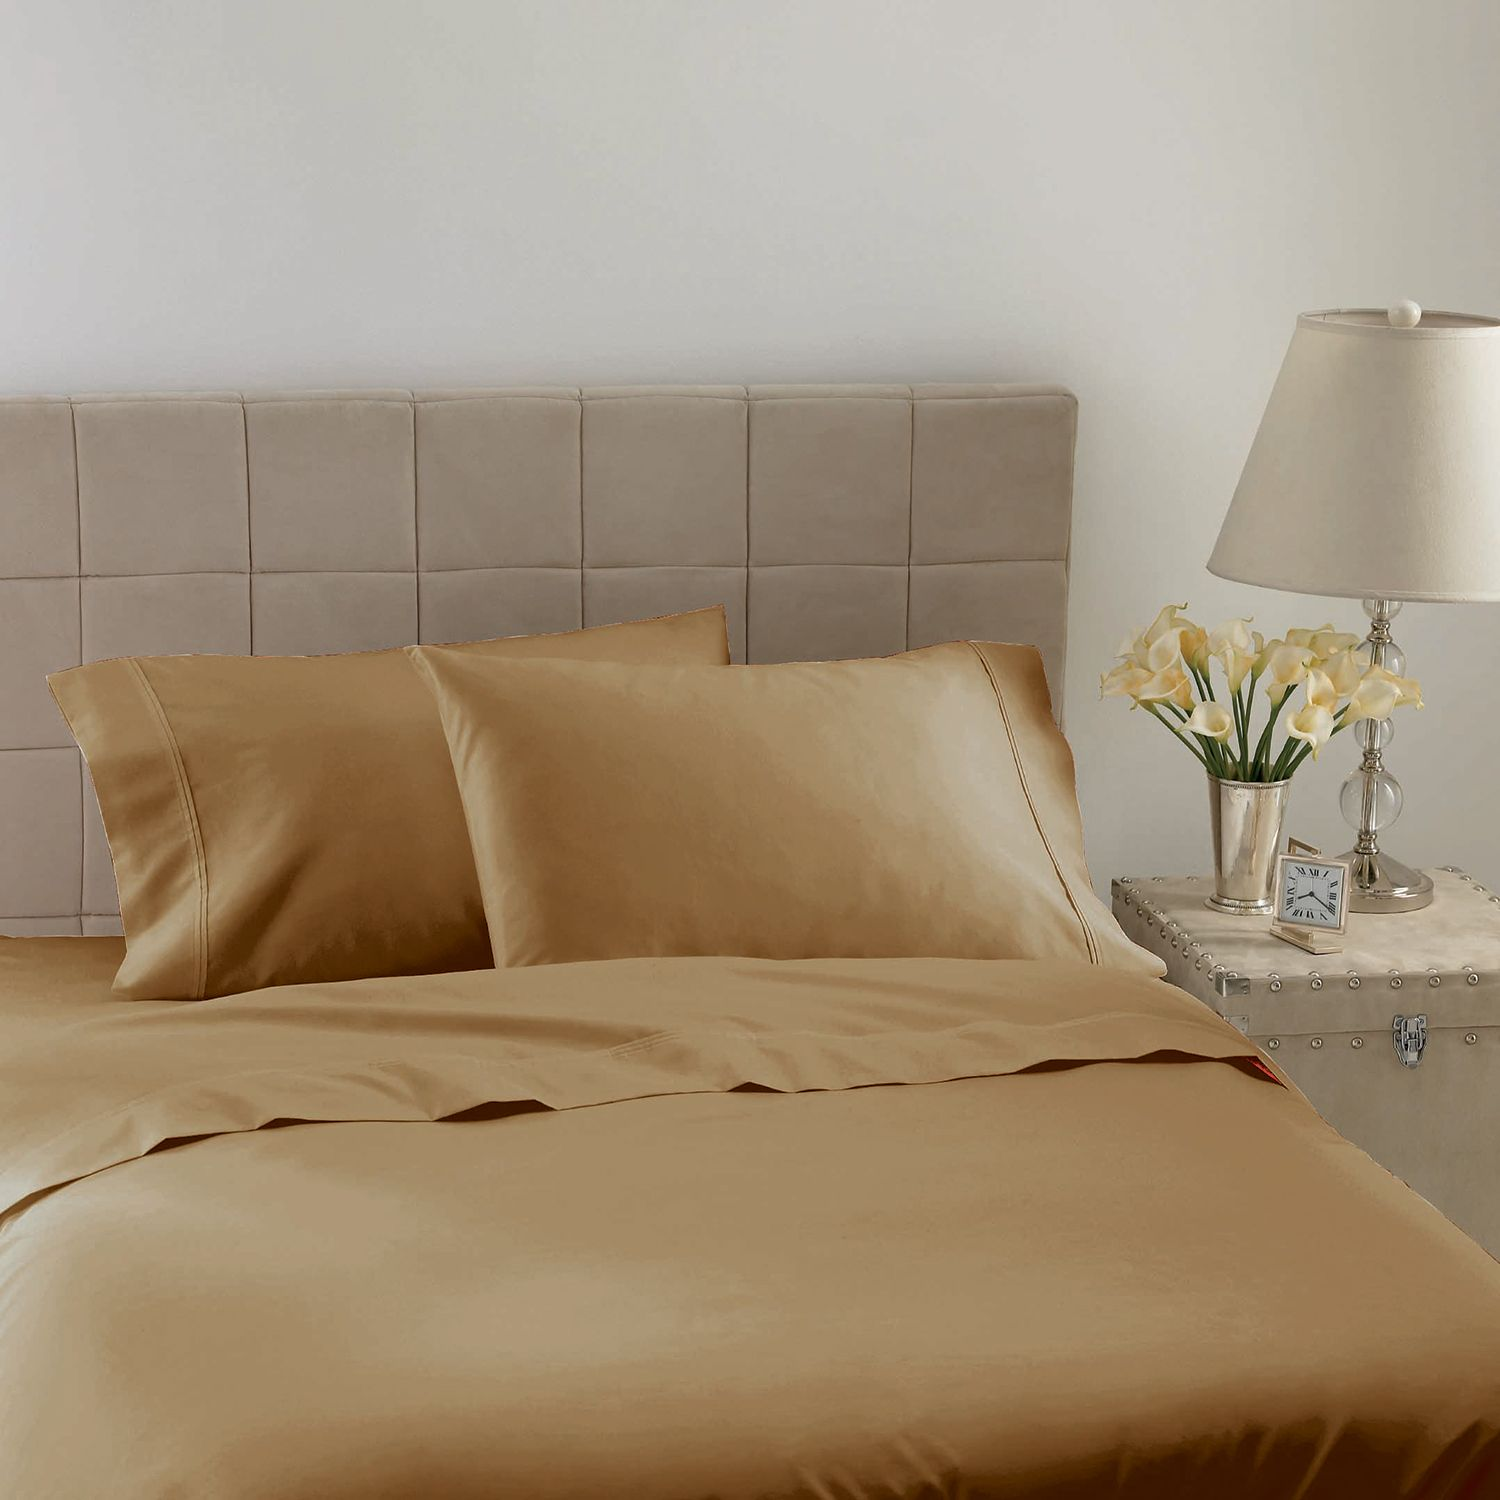 Hotel luxury reserve collection 600 thread count sheet set for Luxury hotel 750 collection sheets